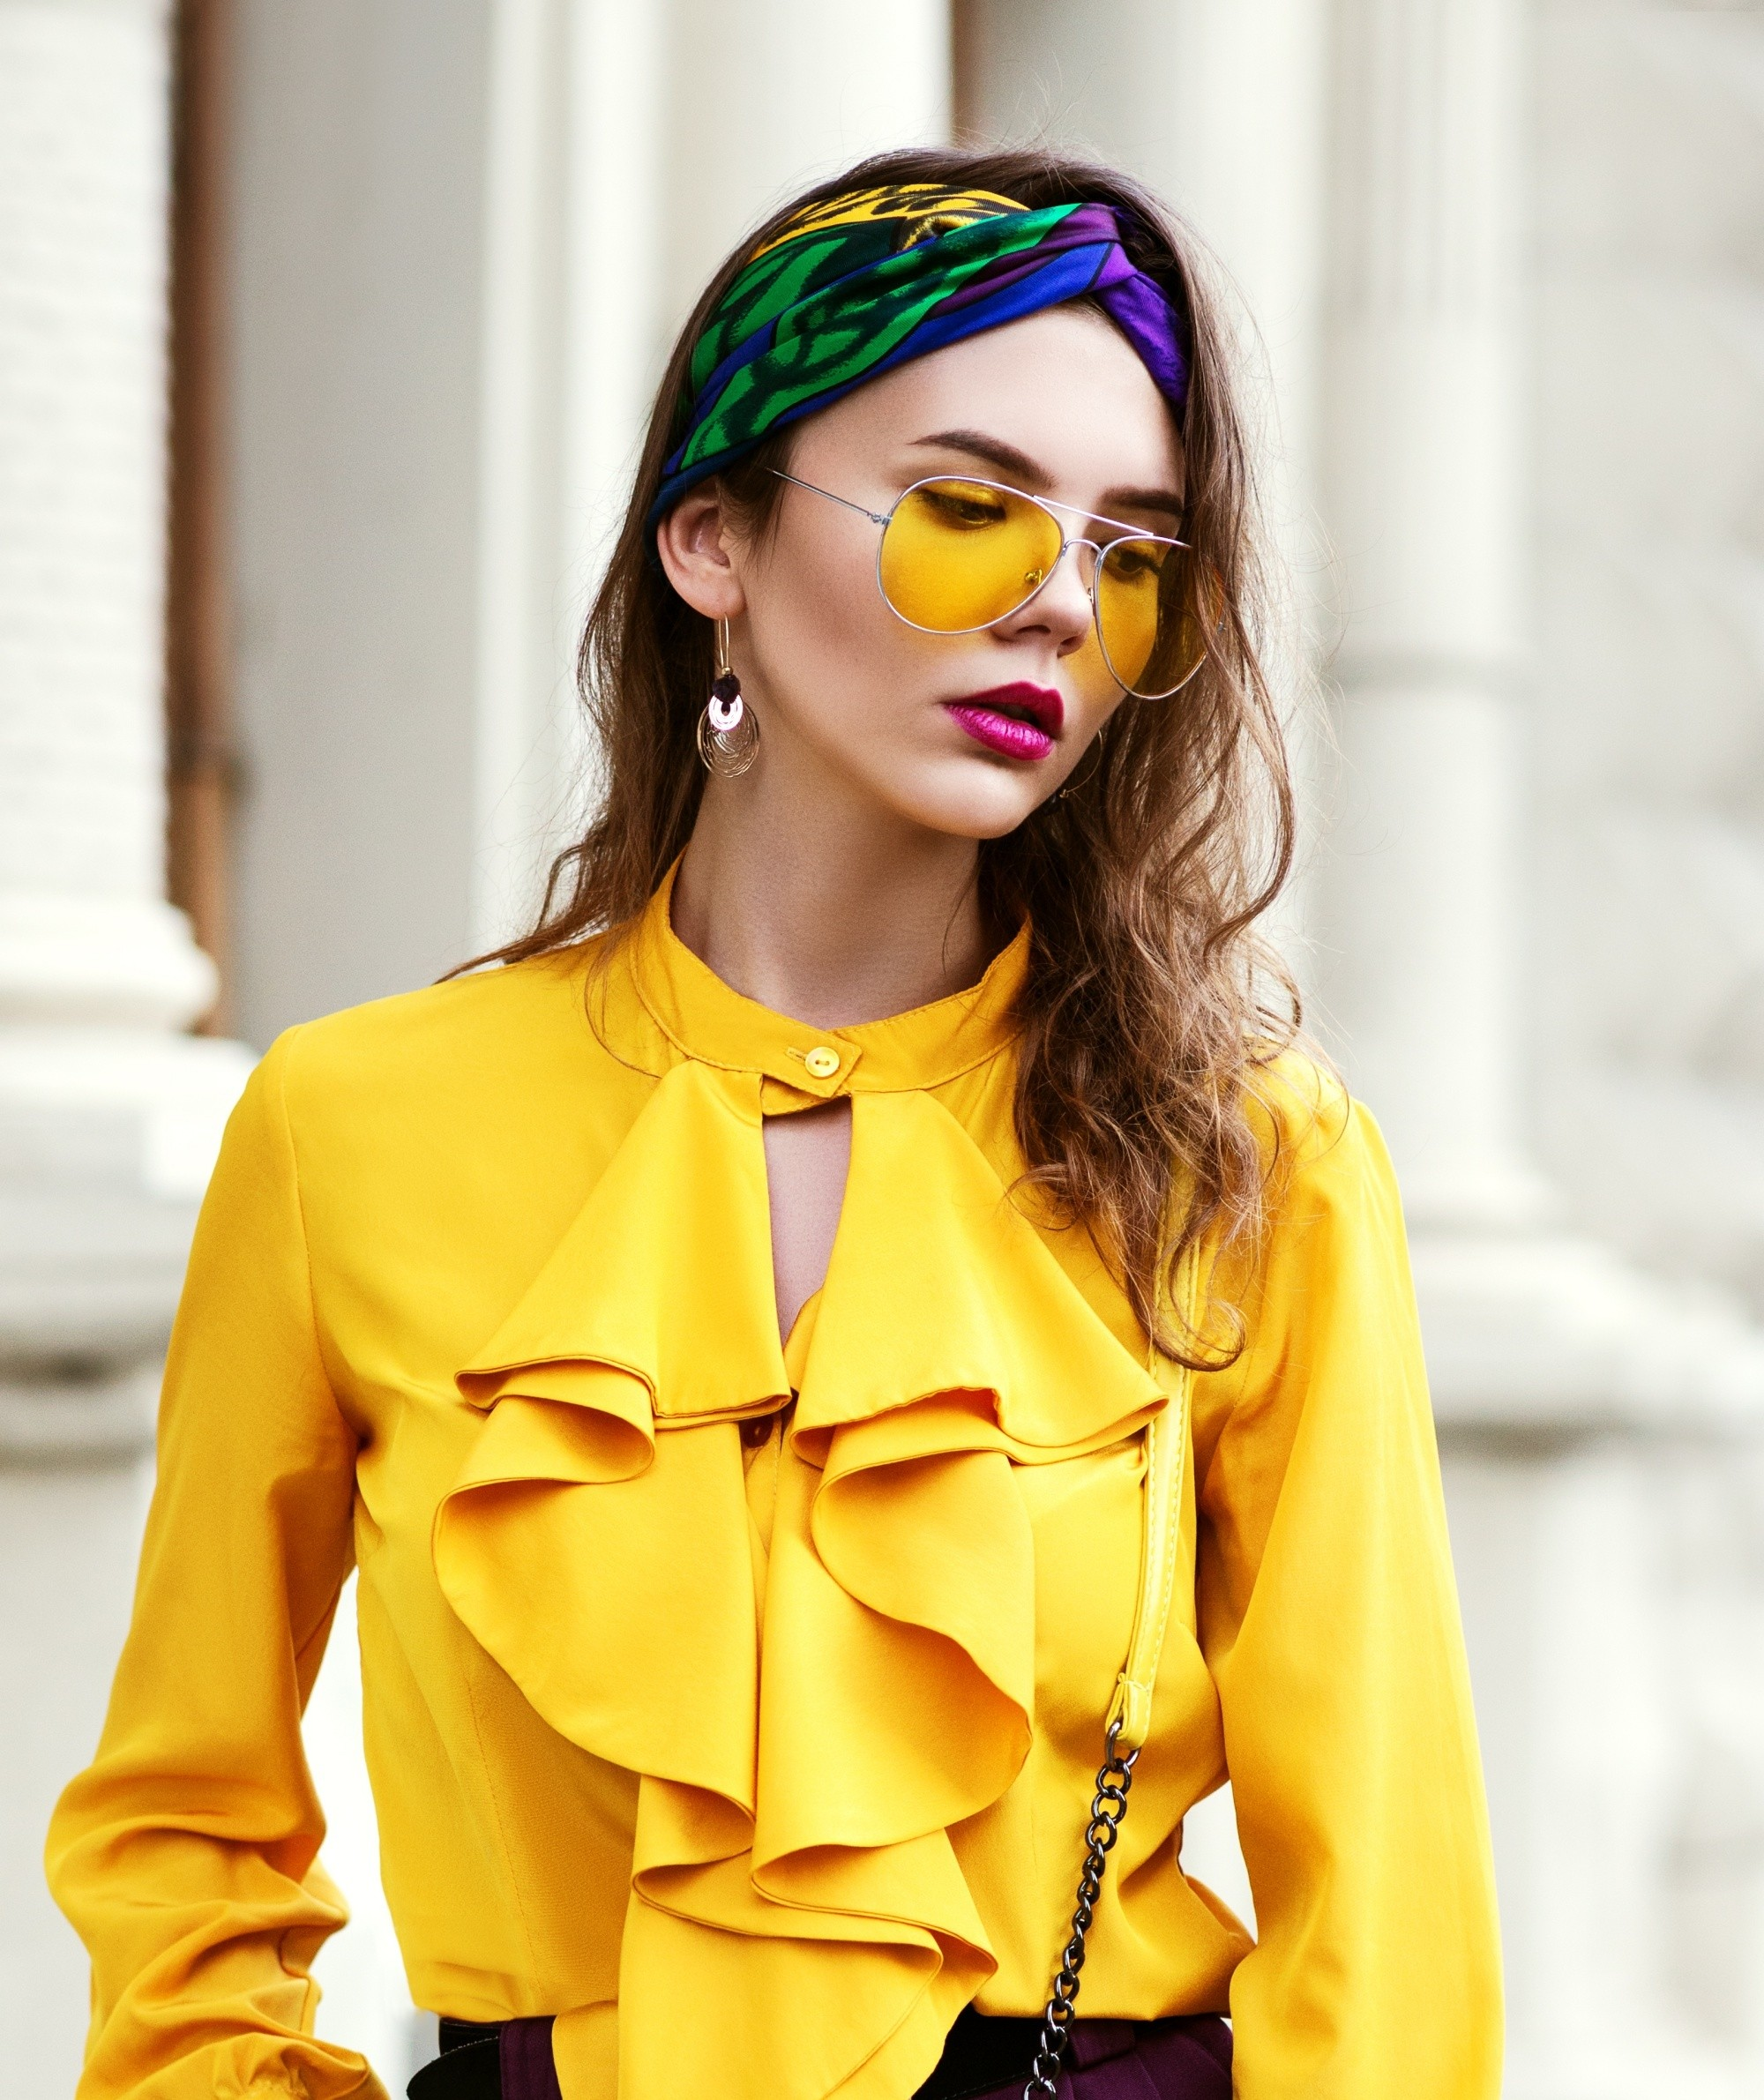 Headband hairstyles: Woman with long brown wavy hair wearing a headband and yellow blouse outdoors